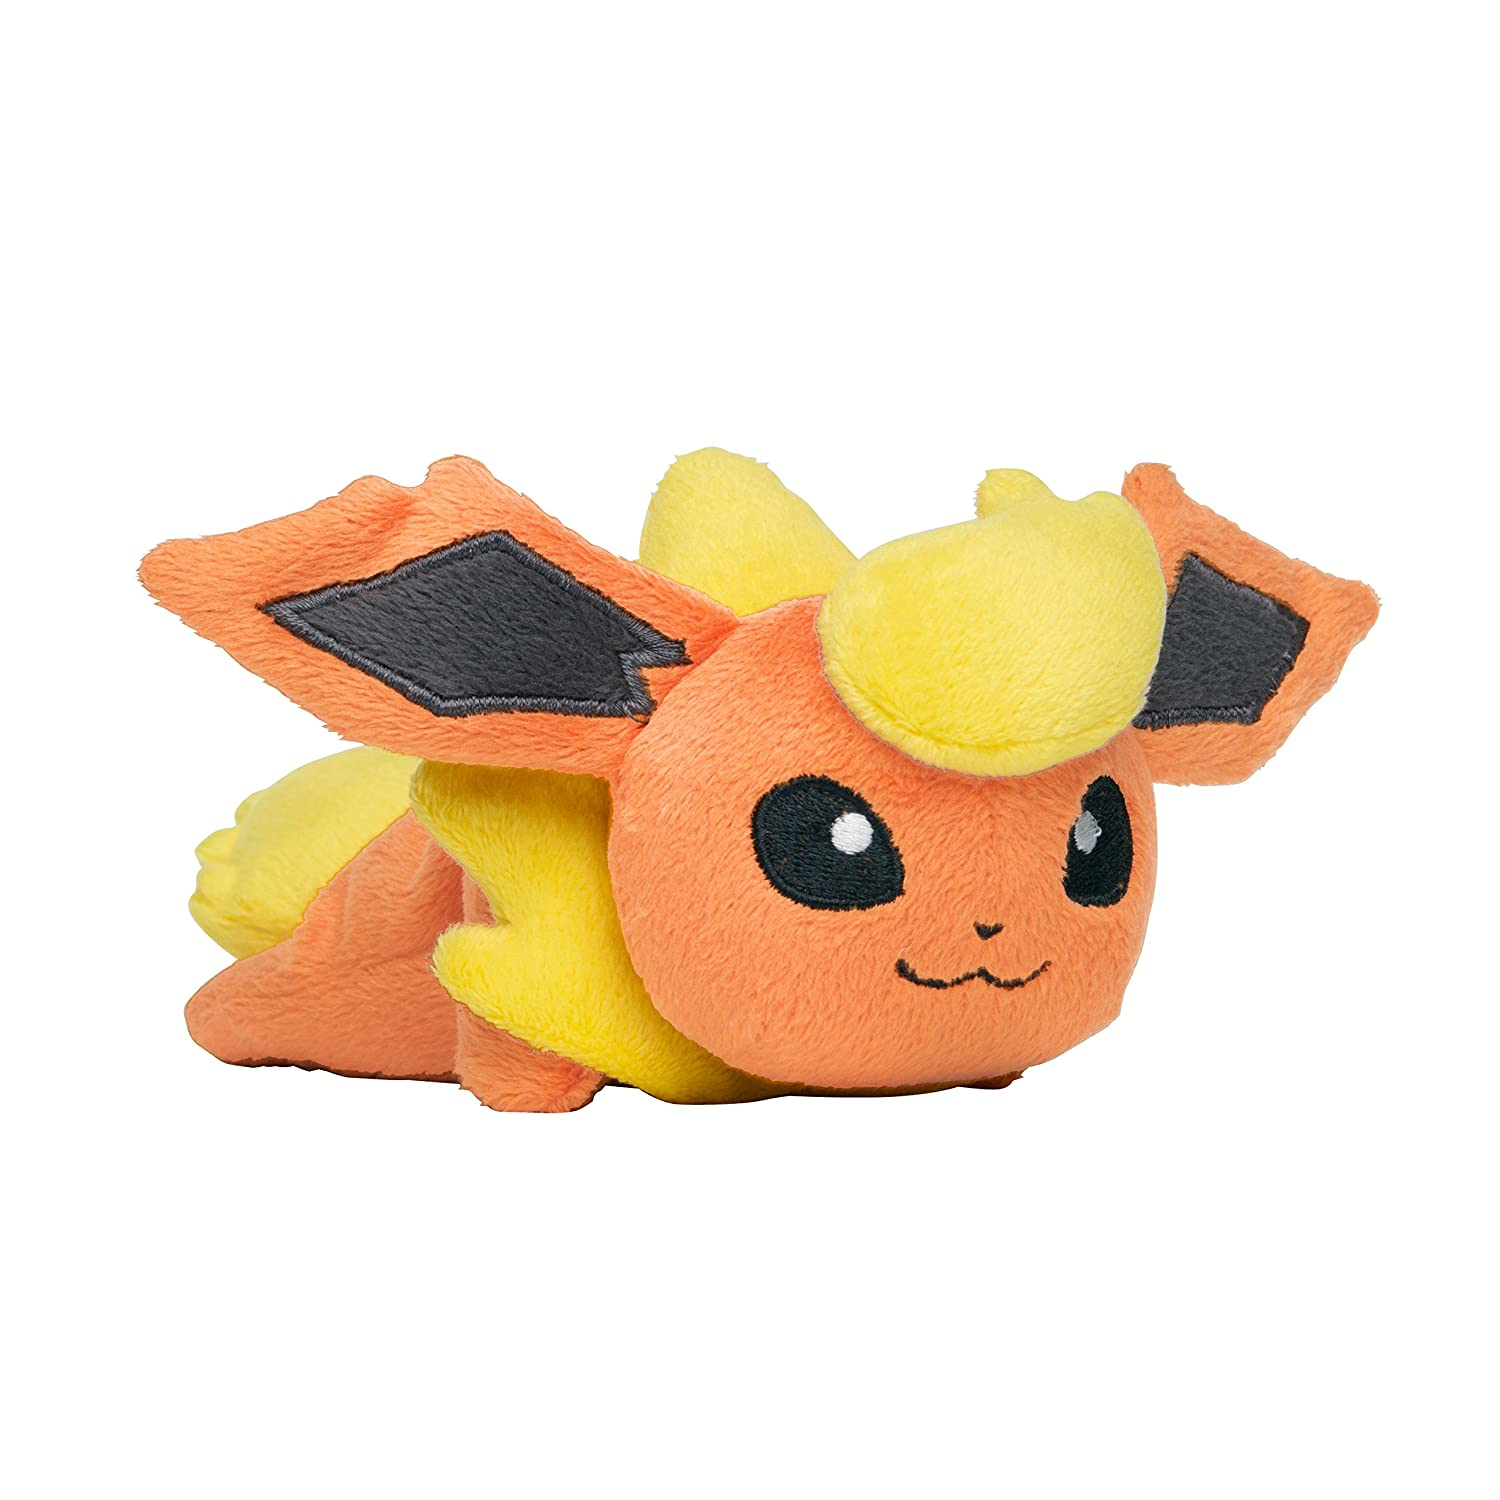 Amazon.com: Pokemon Center Original Kuttari stuffed Flareon: Toys & Games